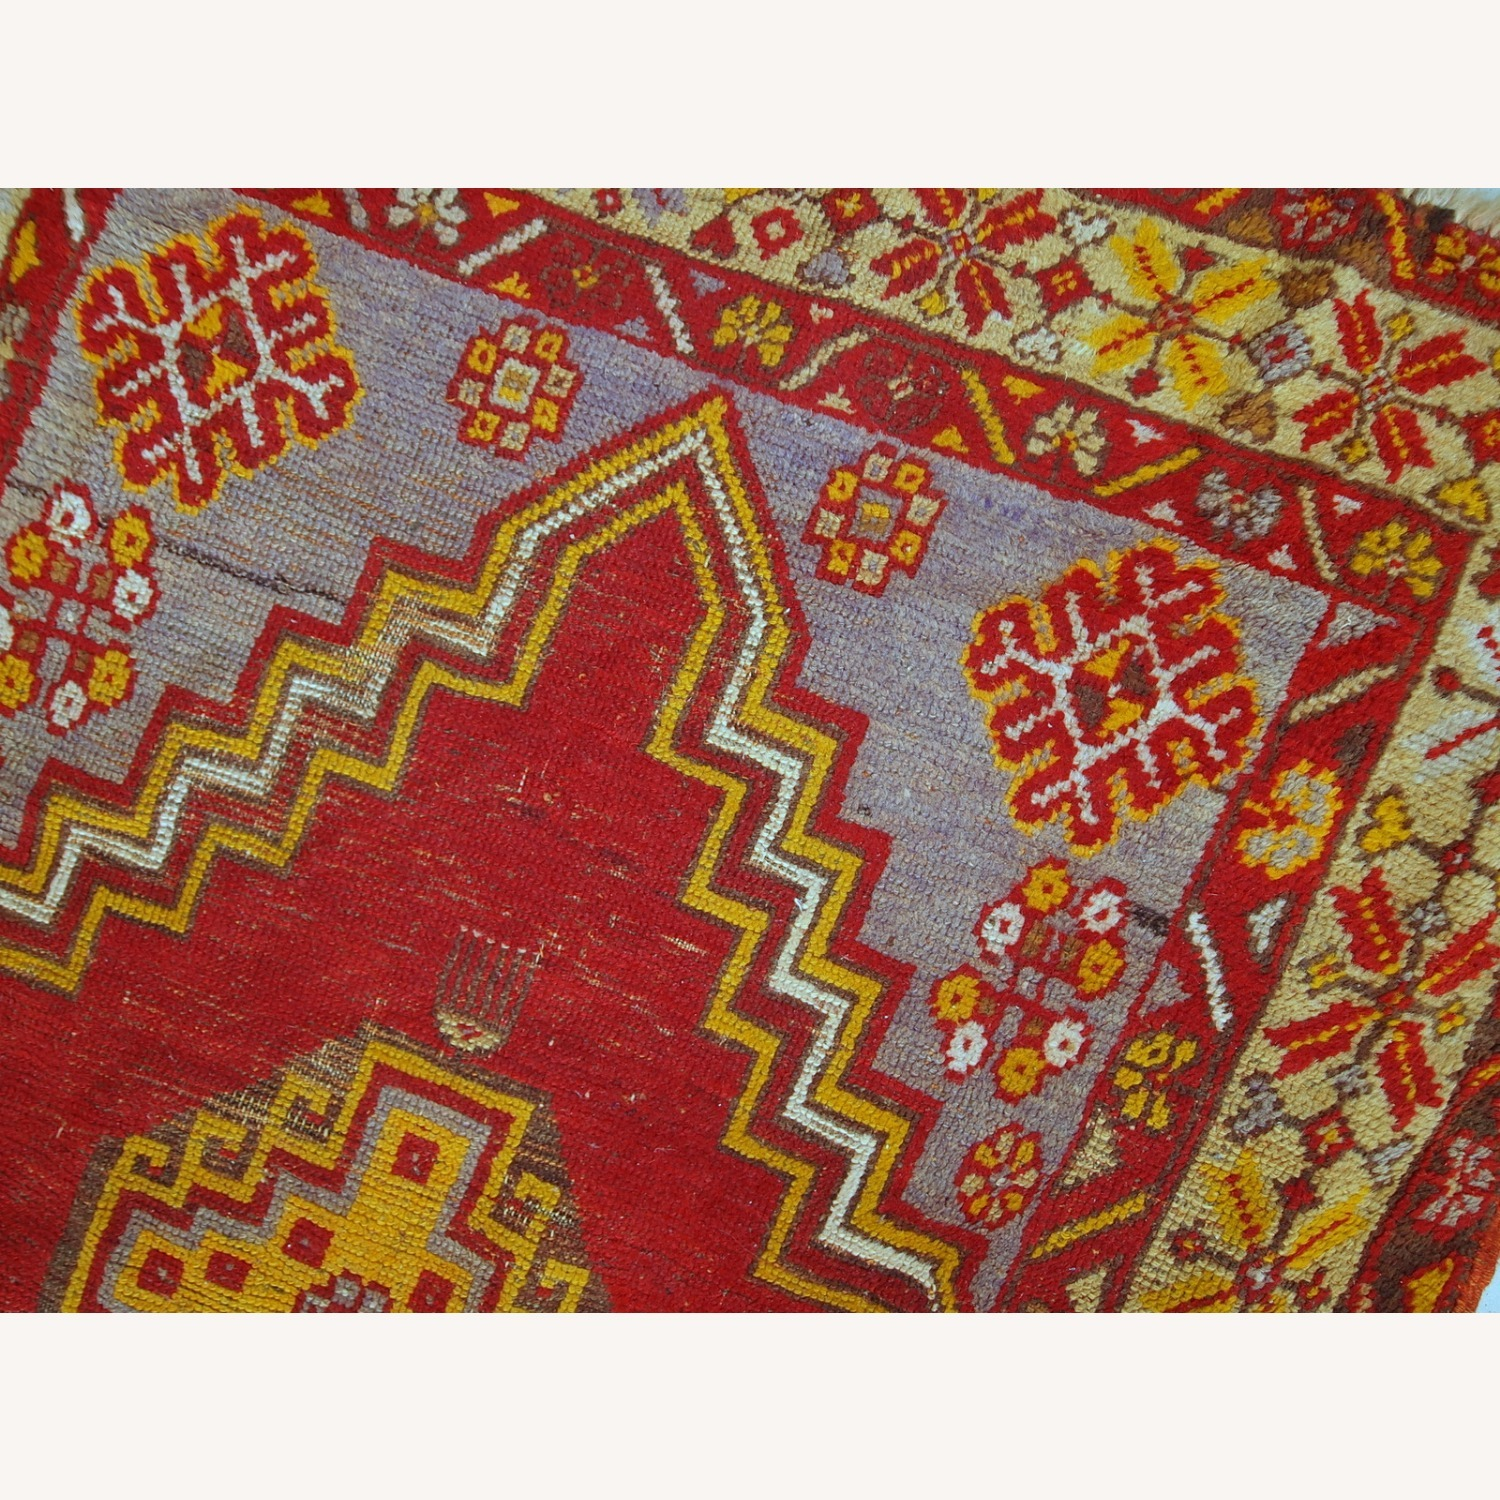 Handmade Antique Turkish Anatolian Rug - image-7